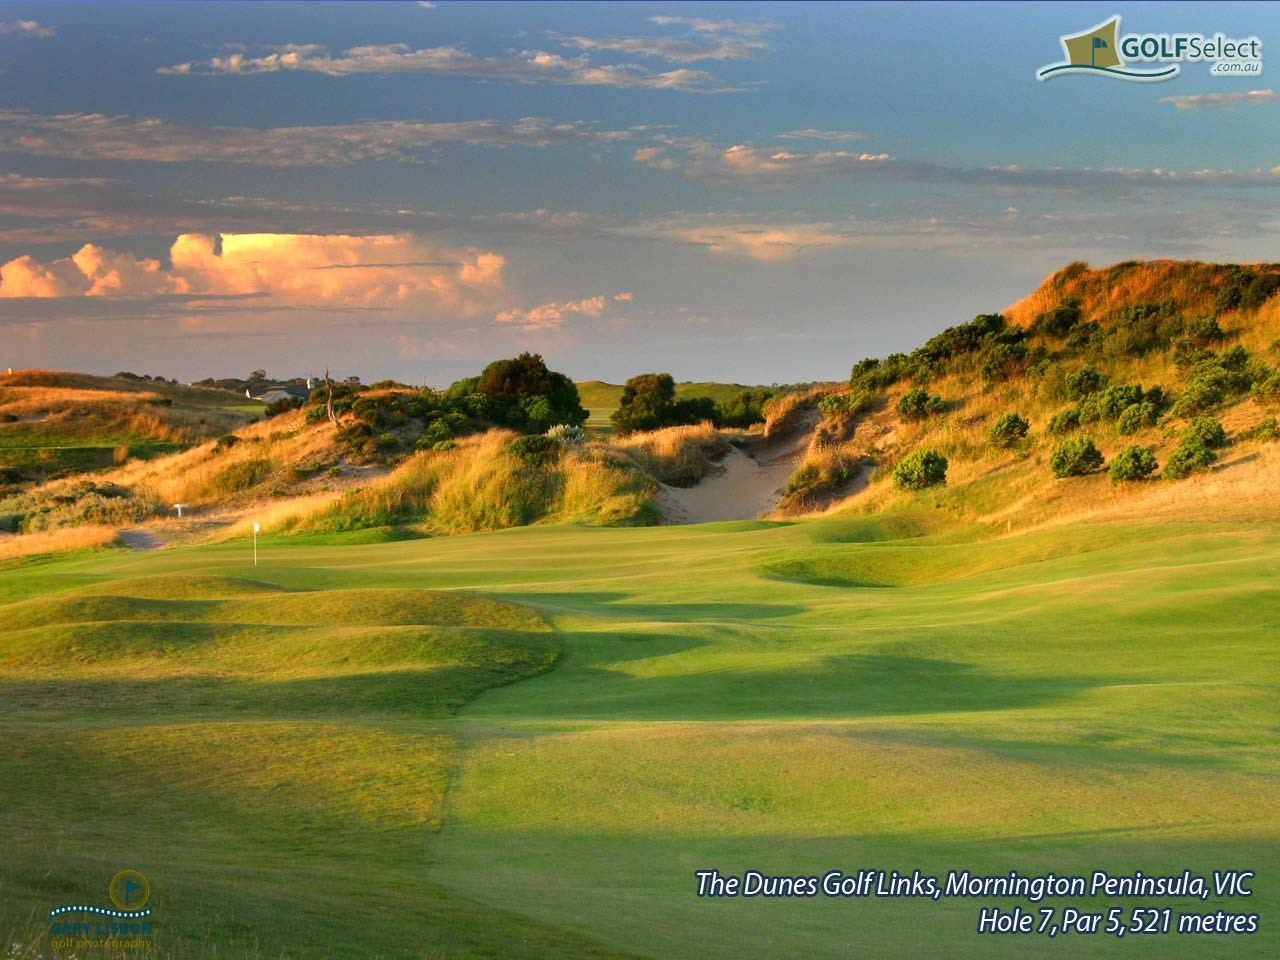 The Dunes Golf Links Hole 7, Par 5, 521 metres